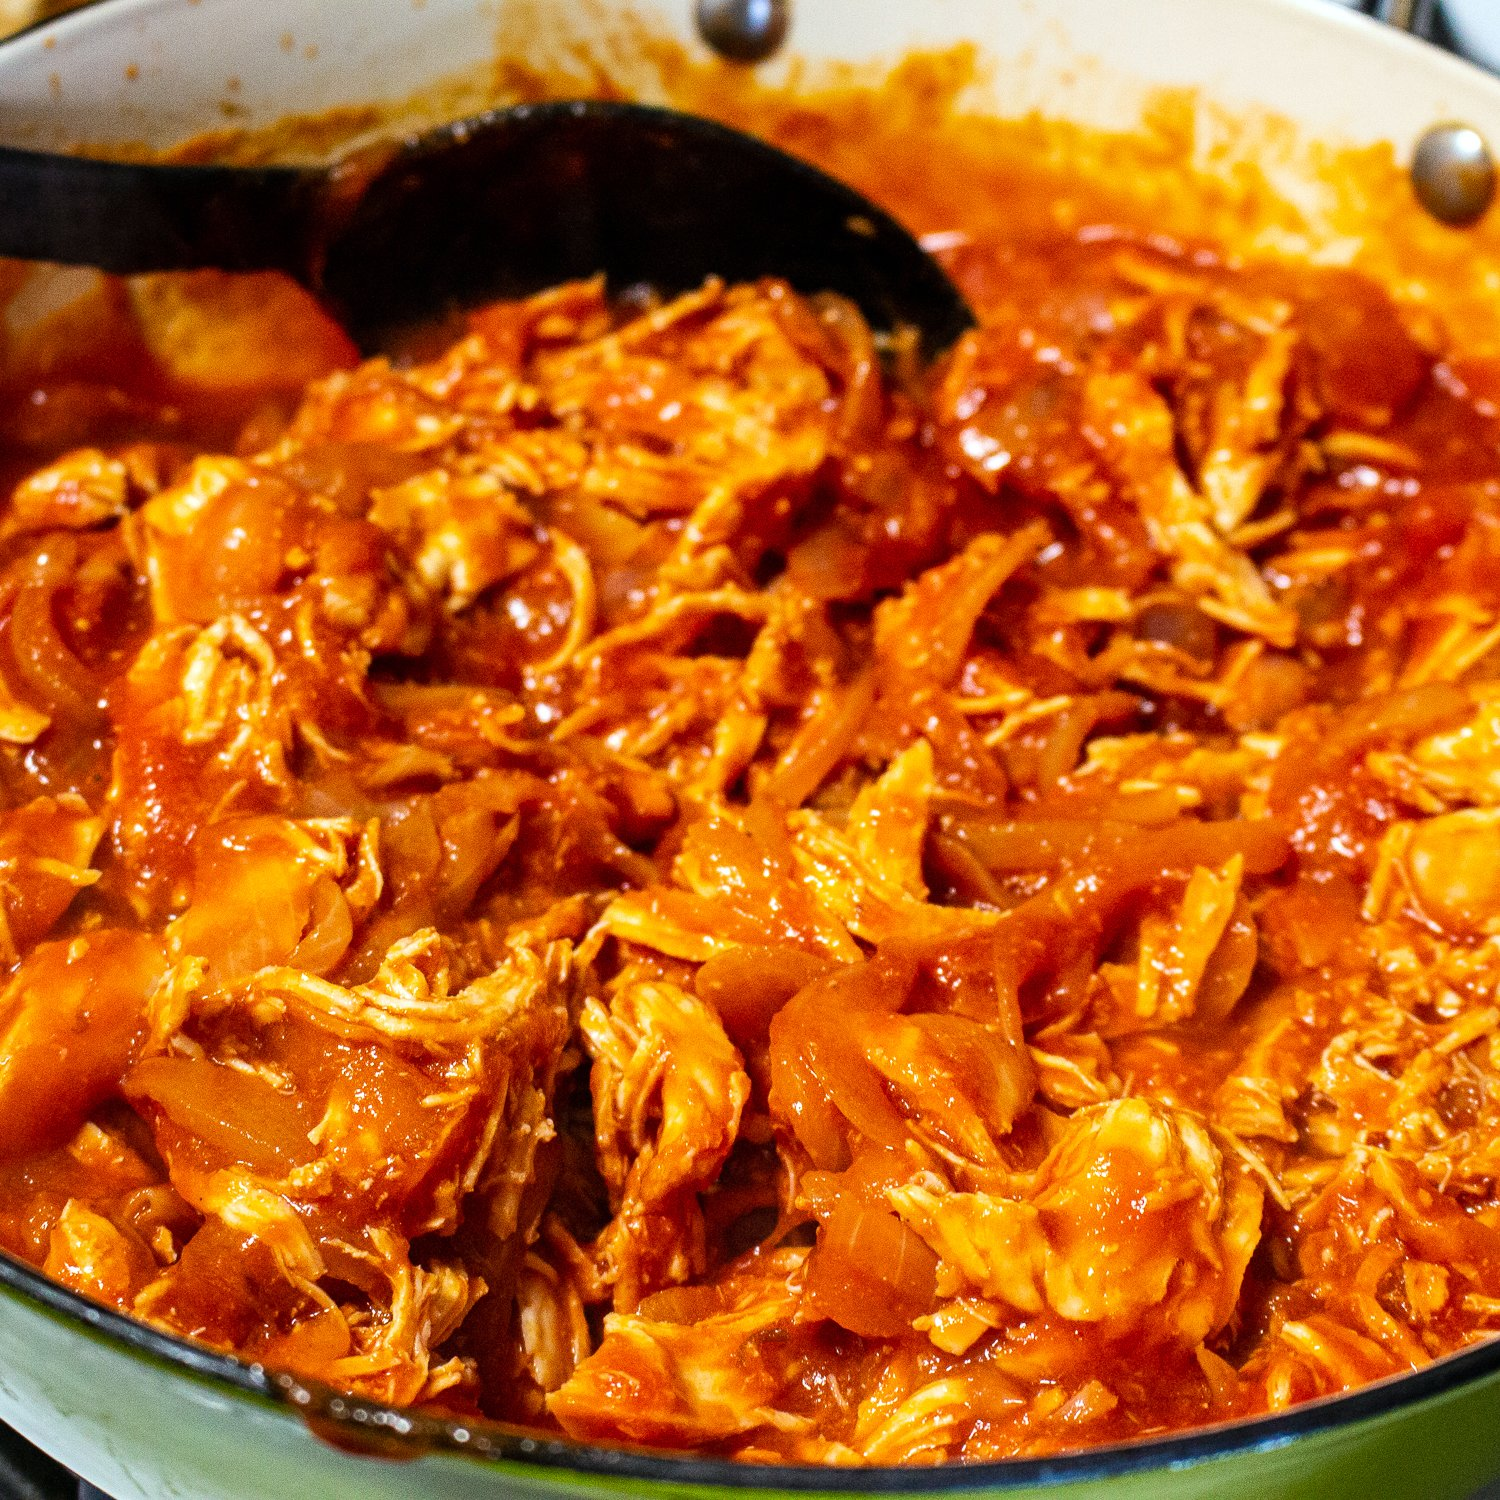 This is an authentic Mexican Tinga de Pollo- Chicken in Chipotle Tomato Sauce, a dish made with shredded chicken in a delicious Chipotle tomato sauce.